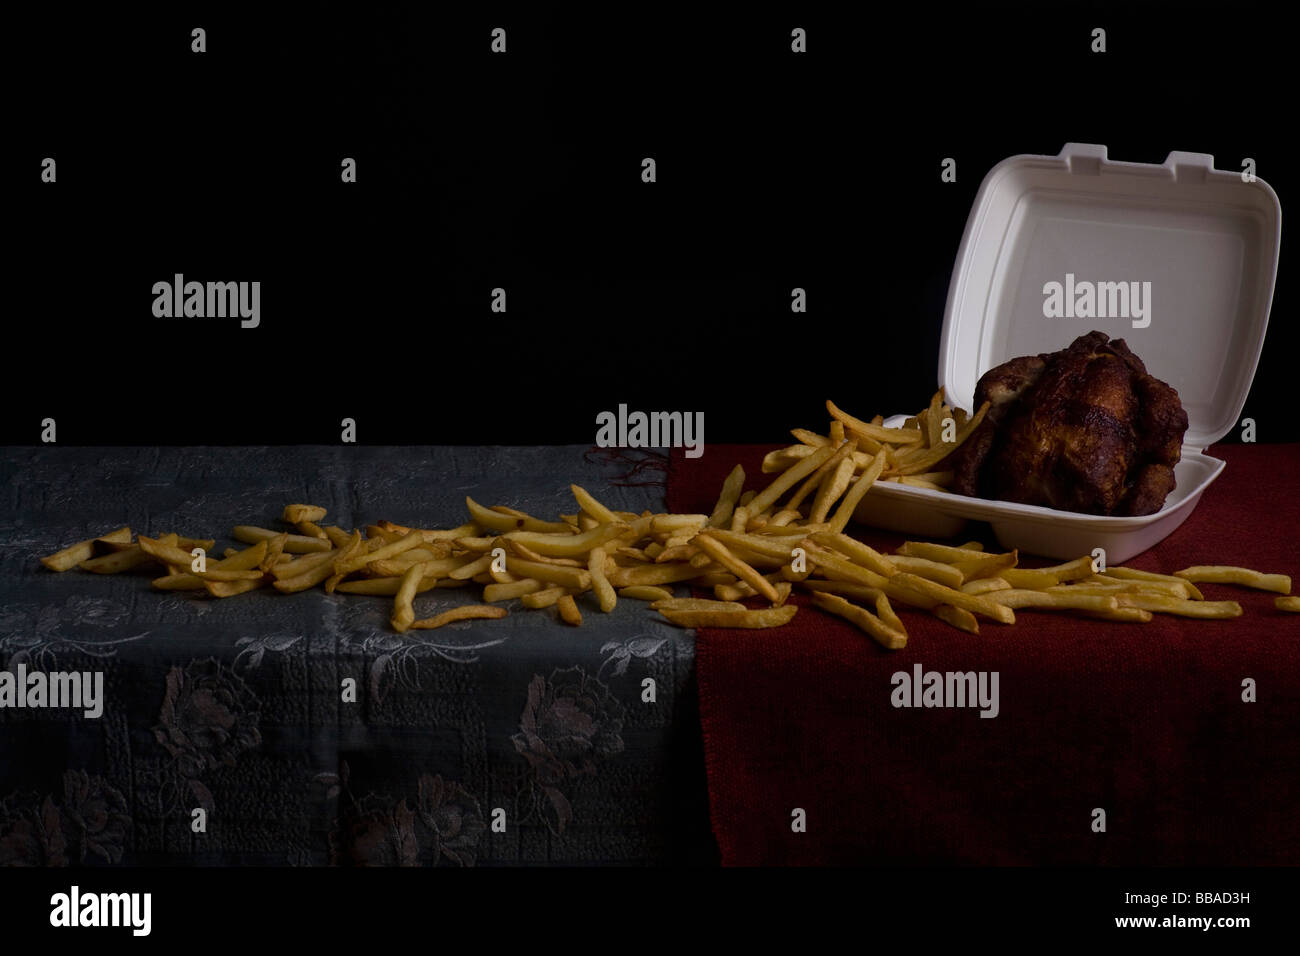 French Fries and roasted chicken, still life - Stock Image